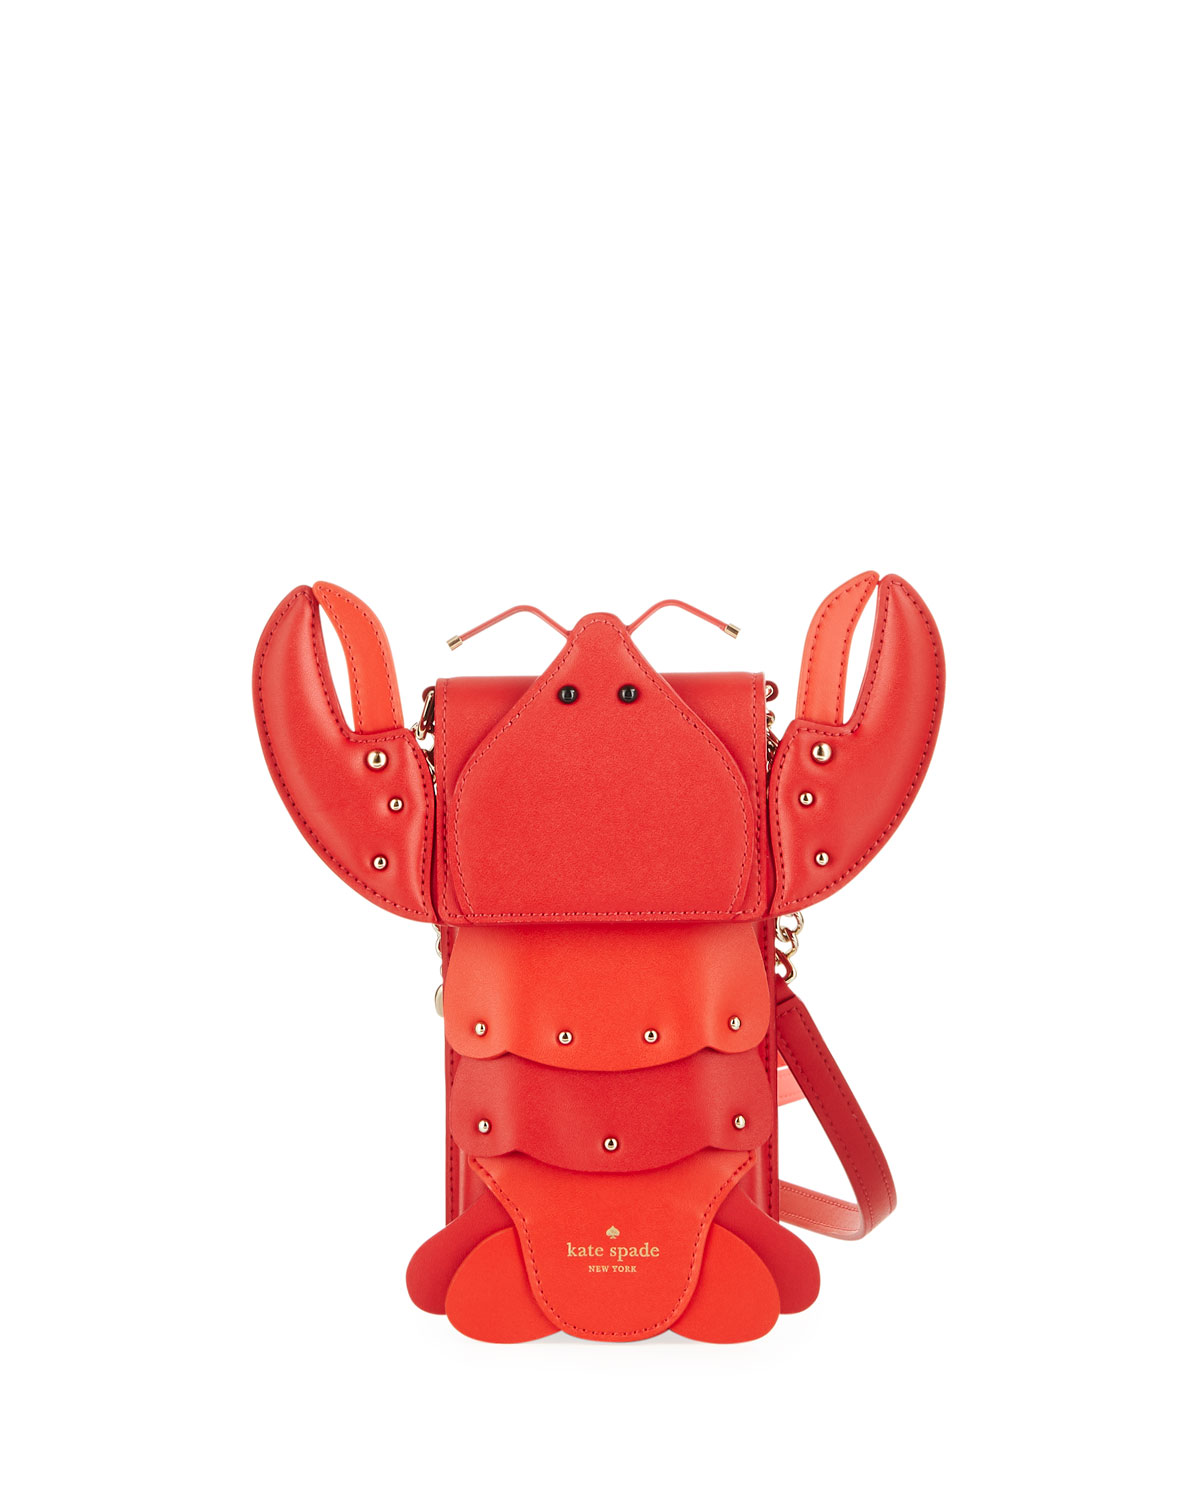 kate spade new york lobster north south phone crossbody bag  c2a1ede5b7fc